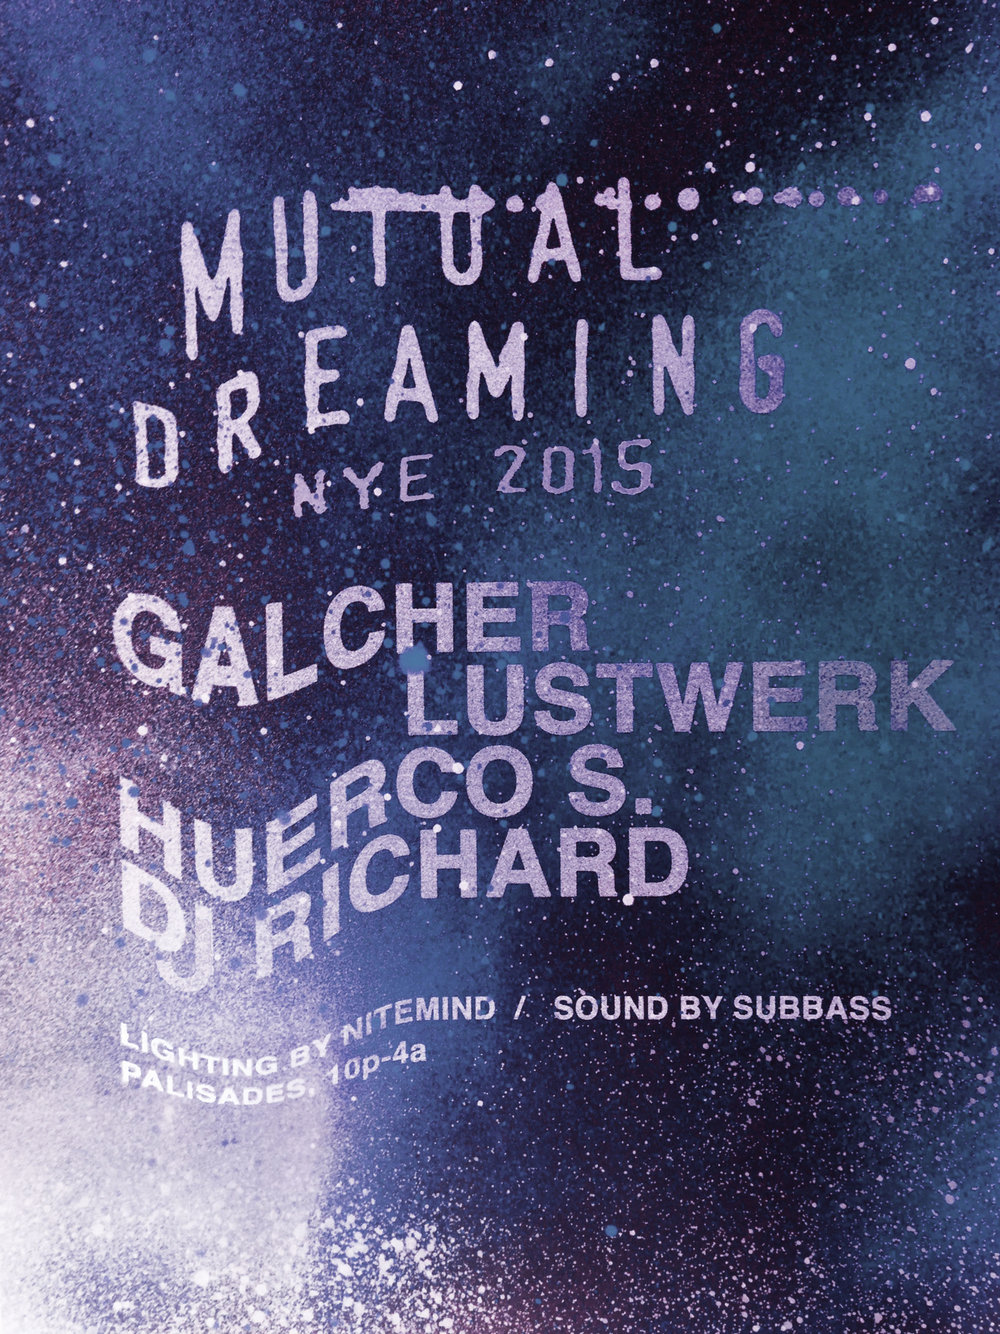 Mutual Dreaming NYE: Galcher Lustwerk, Huerco S., DJ Richard  New Years 2015